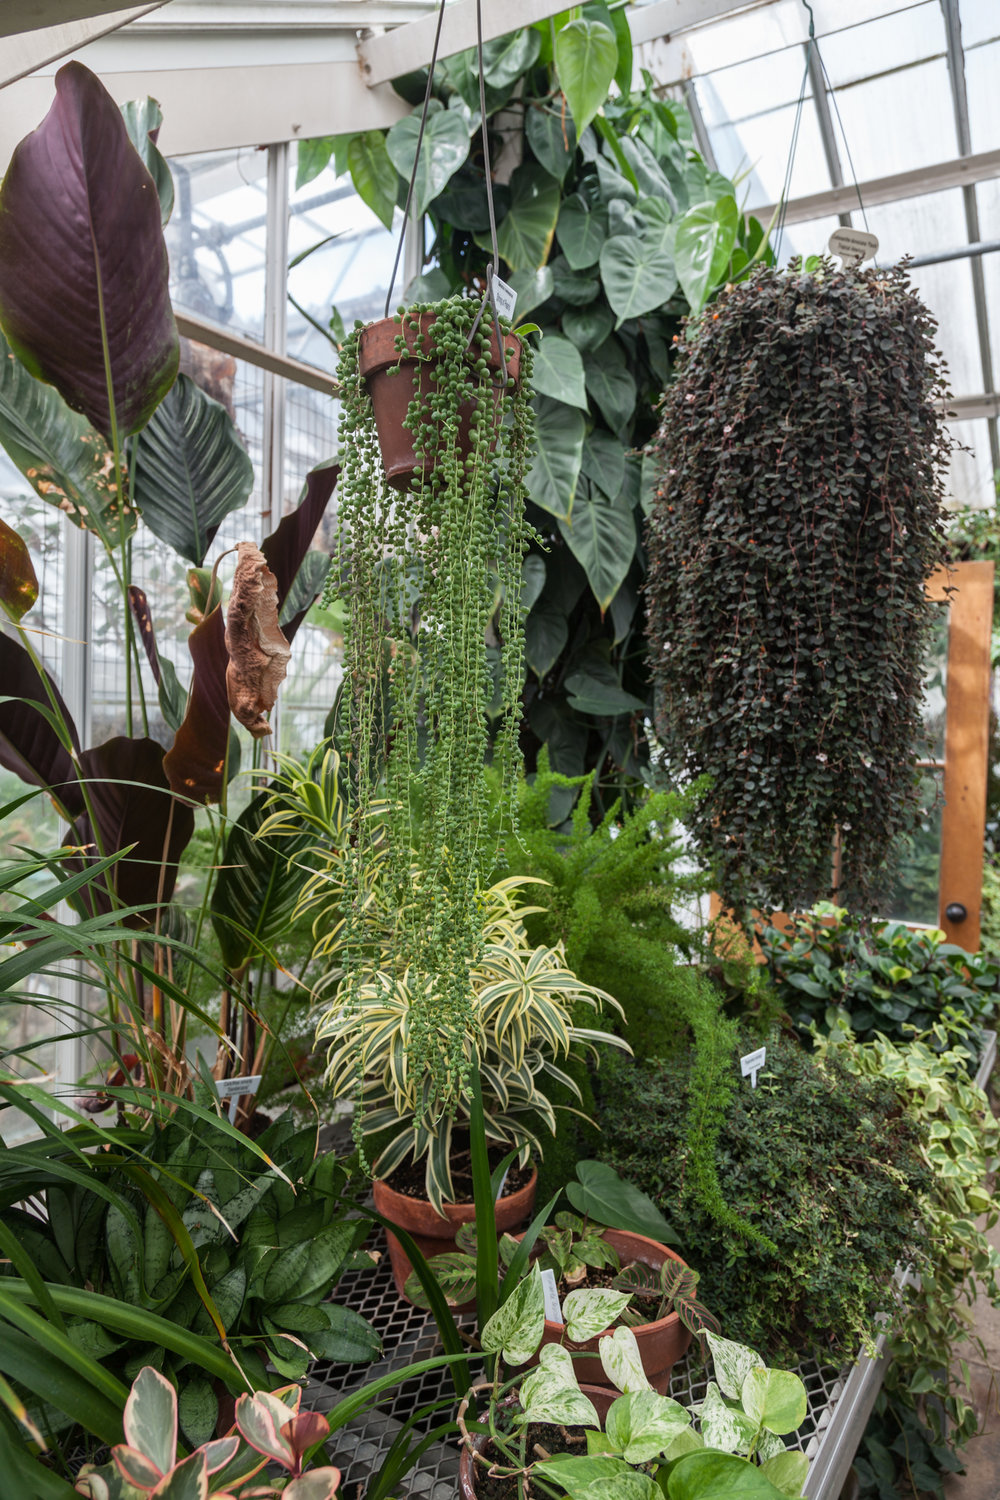 A Senecio rowleyanus, or string-of-pearls, hangs in the foreground flanked by a plethora of plants